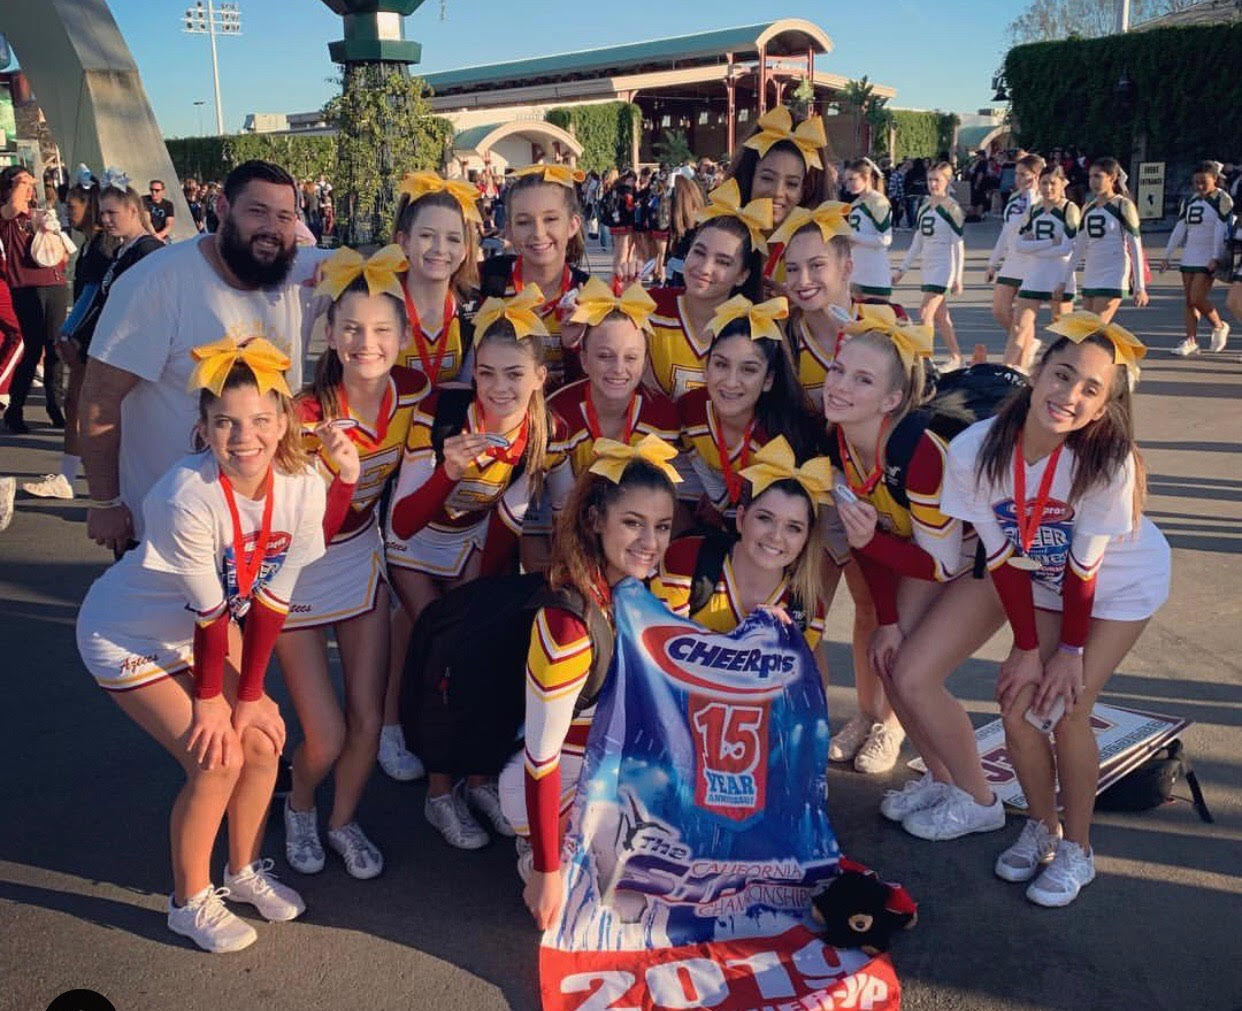 Cheer squad after competition celebrating their first place win with their banner.